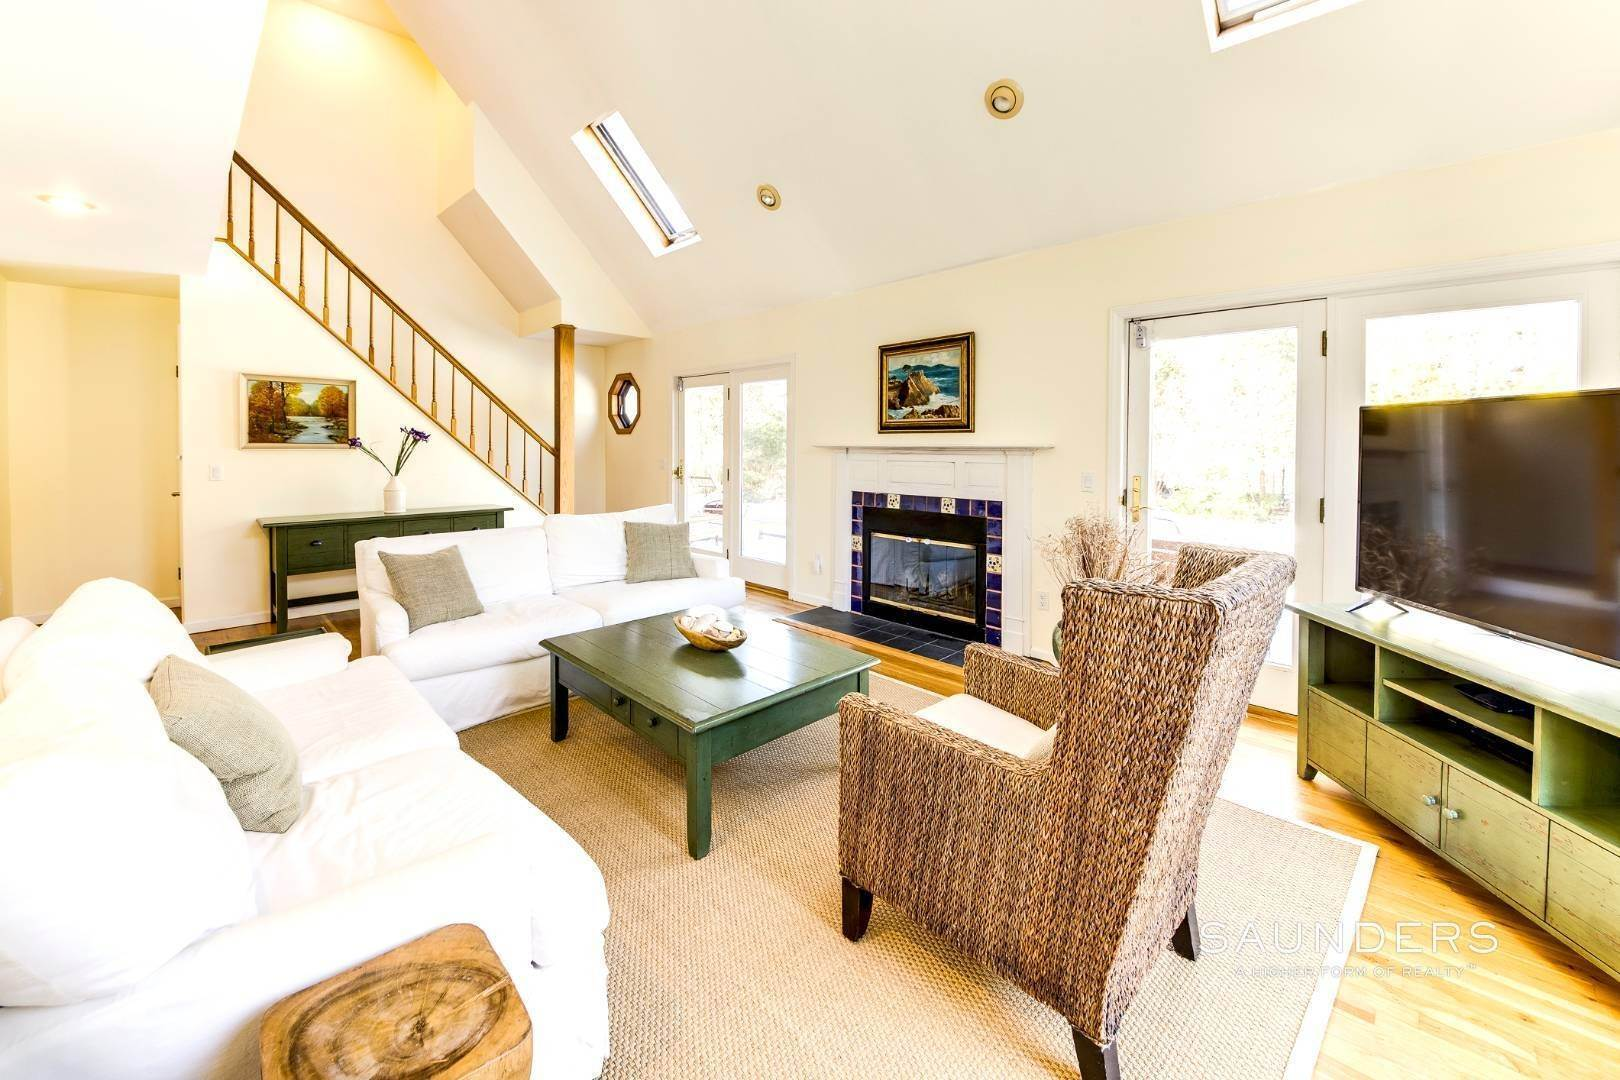 6. Single Family Homes for Sale at Village Edge Traditional 19 Boxwood Street, East Hampton, East Hampton Town, NY 11937